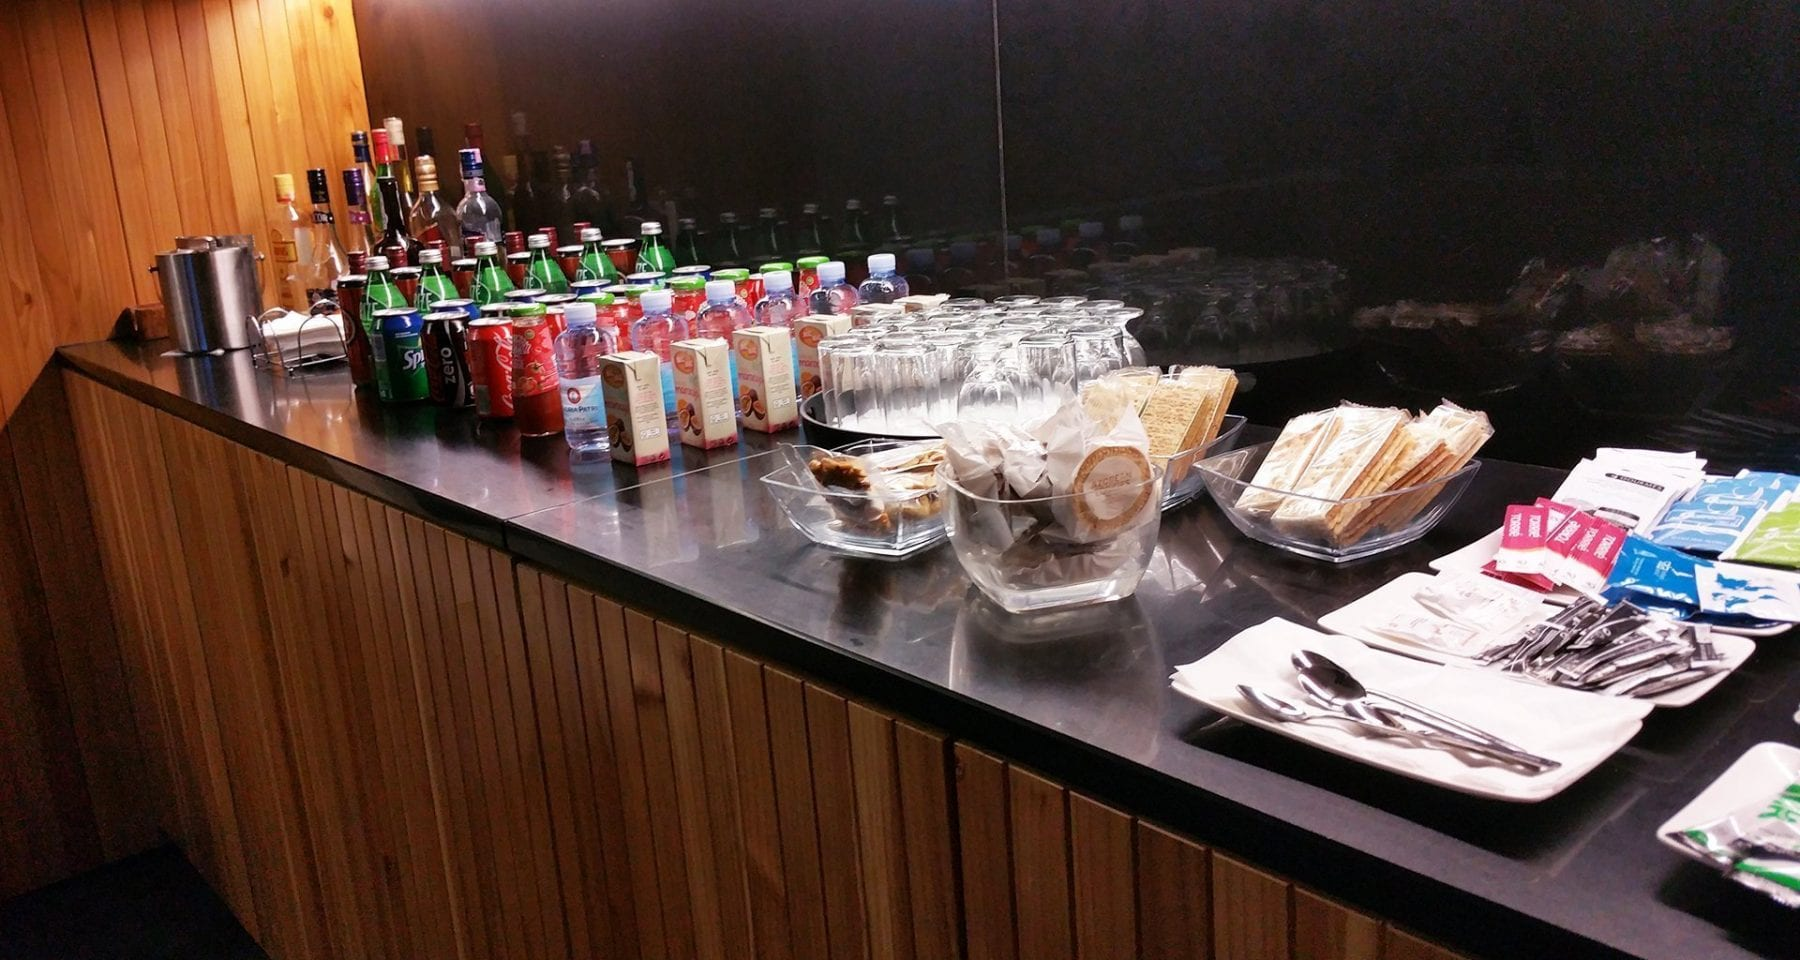 azores airlines business class lounge food